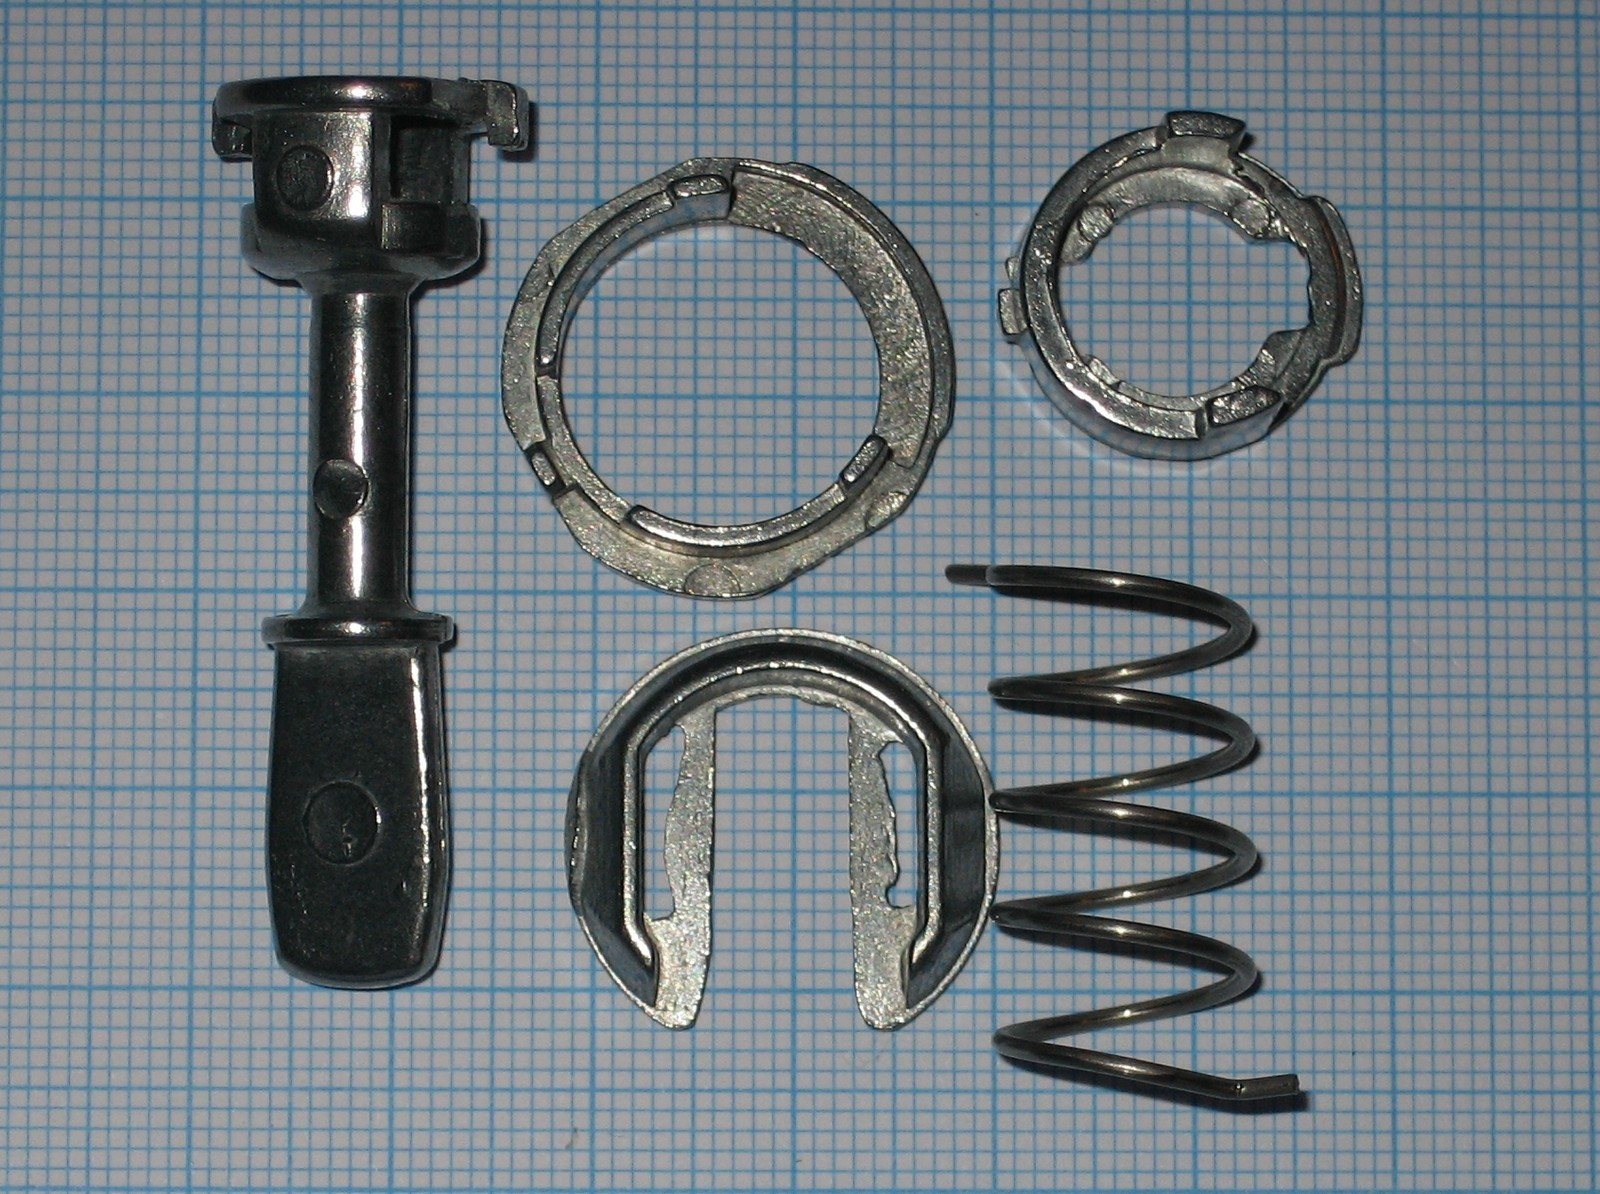 VW Golf/Jetta/Beetle IV Lock Repair Kit